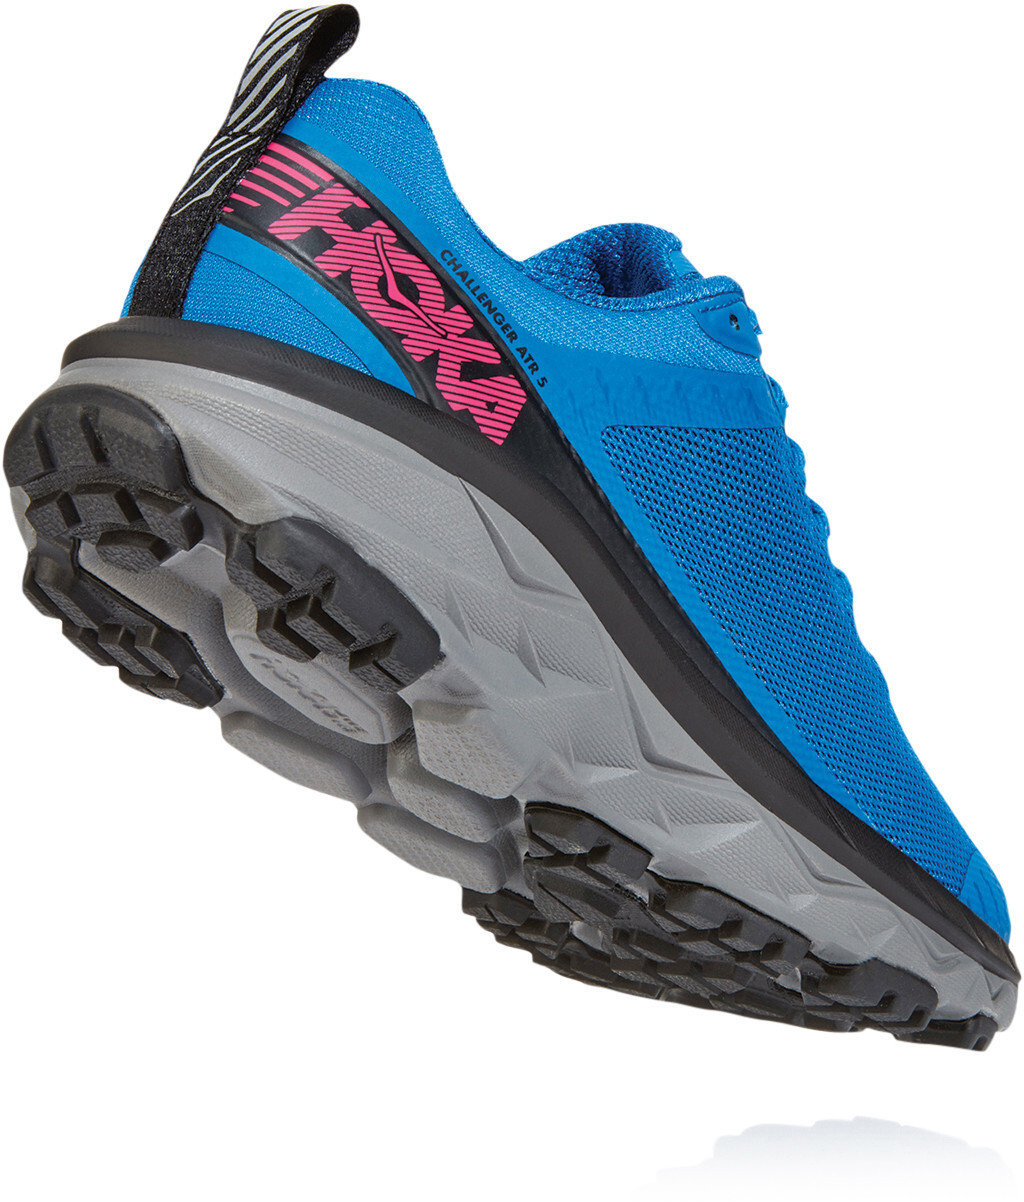 Hoka One One Challenger ATR 5 Shoes Women imperial bluepink peacock